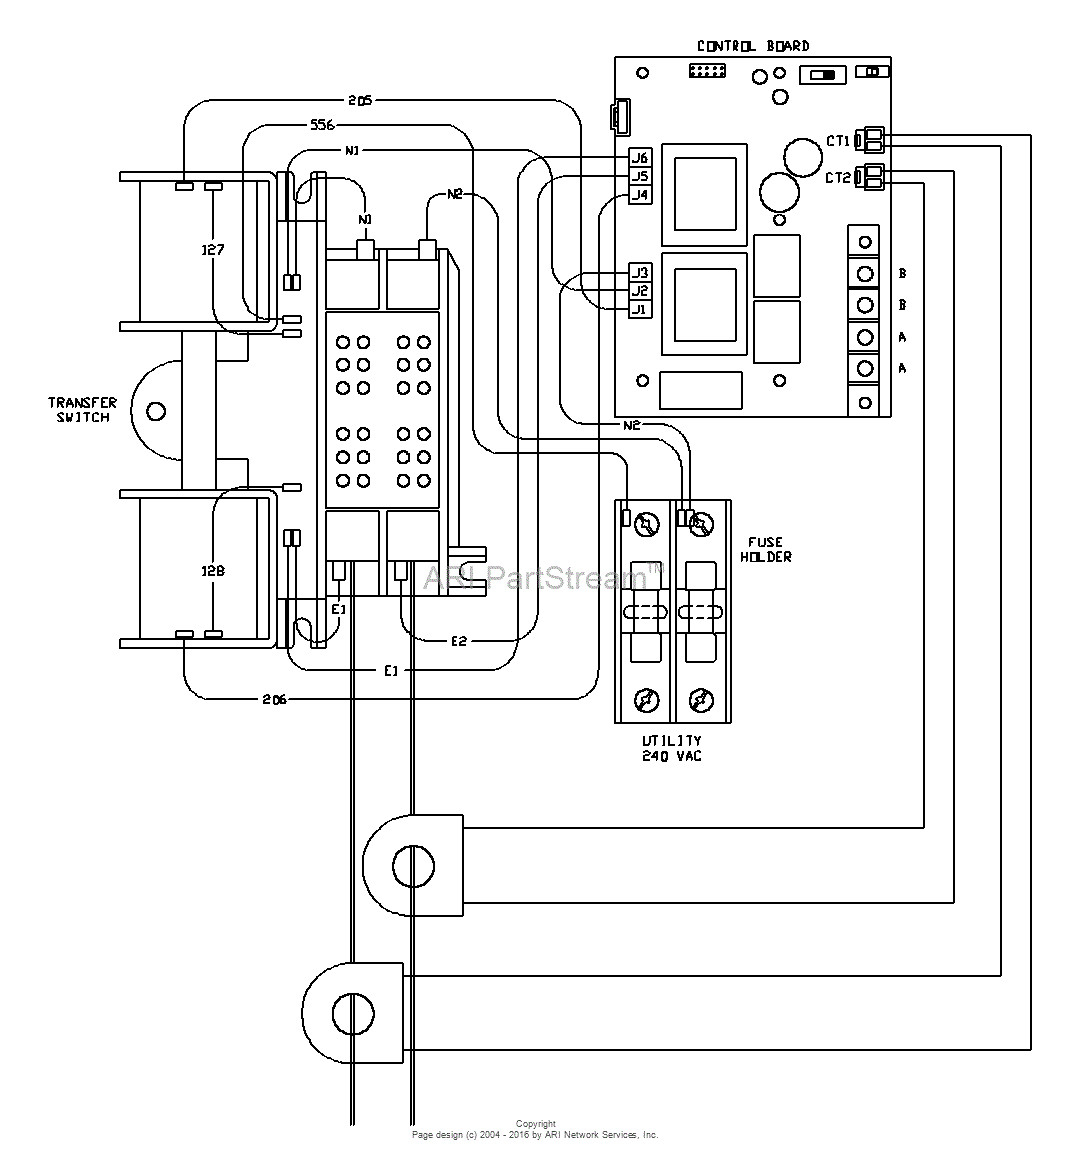 briggs and stratton transfer switch wiring diagram Collection-Briggs And Stratton Power Products 00 10 000 Watt Standby Fancy Transfer Switch Wiring 7-l